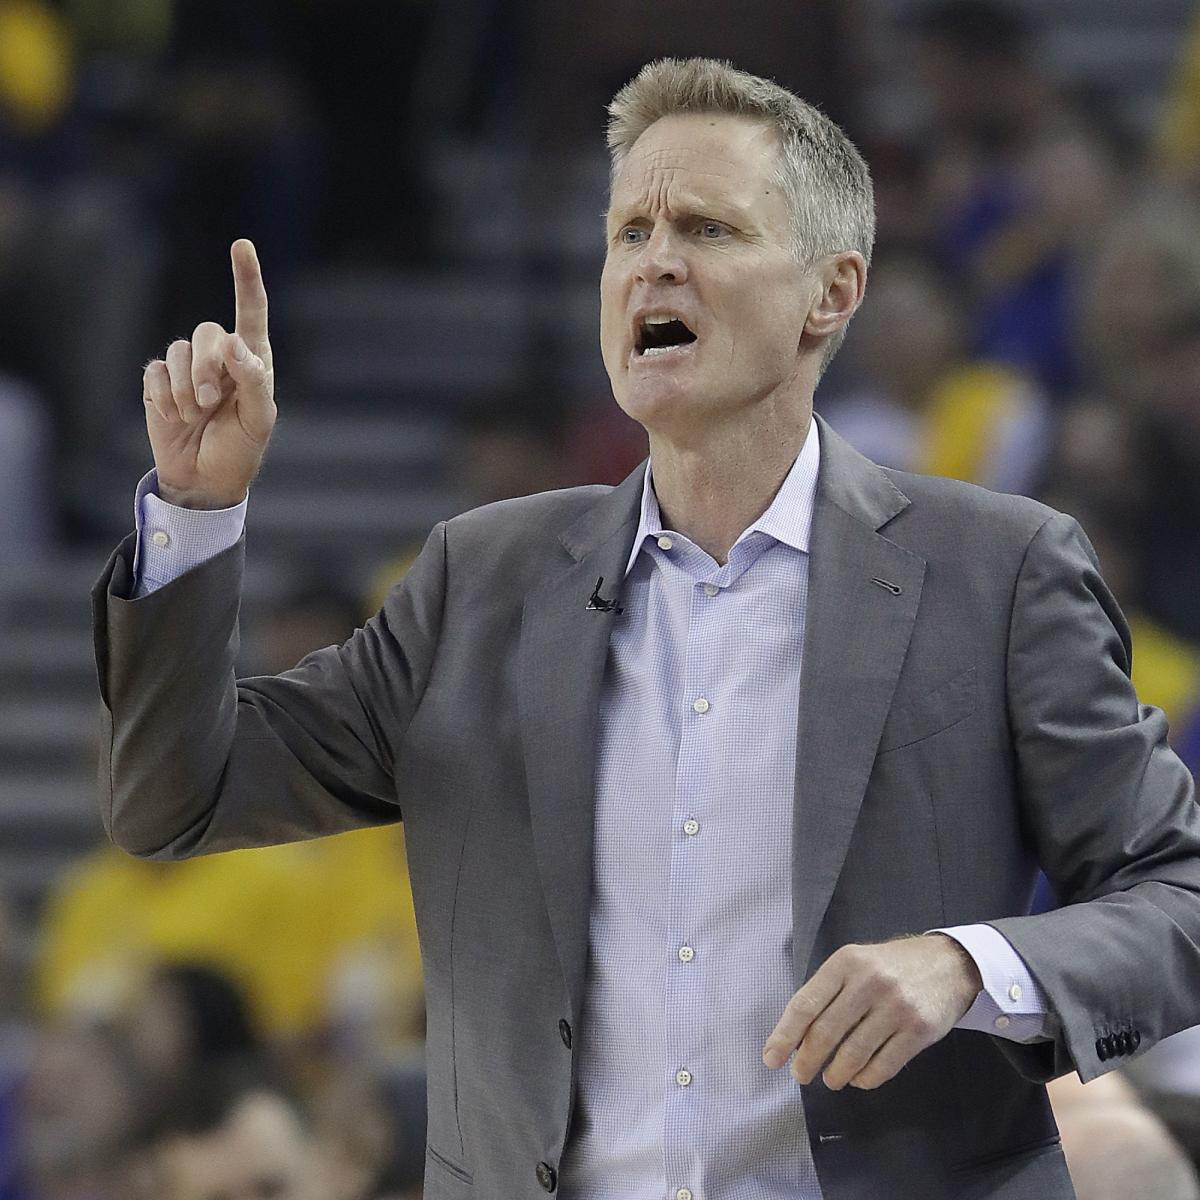 Warriors Vs Rockets Postgame Interview: Steve Kerr Says 'I Love This' After Warriors' Loss Vs